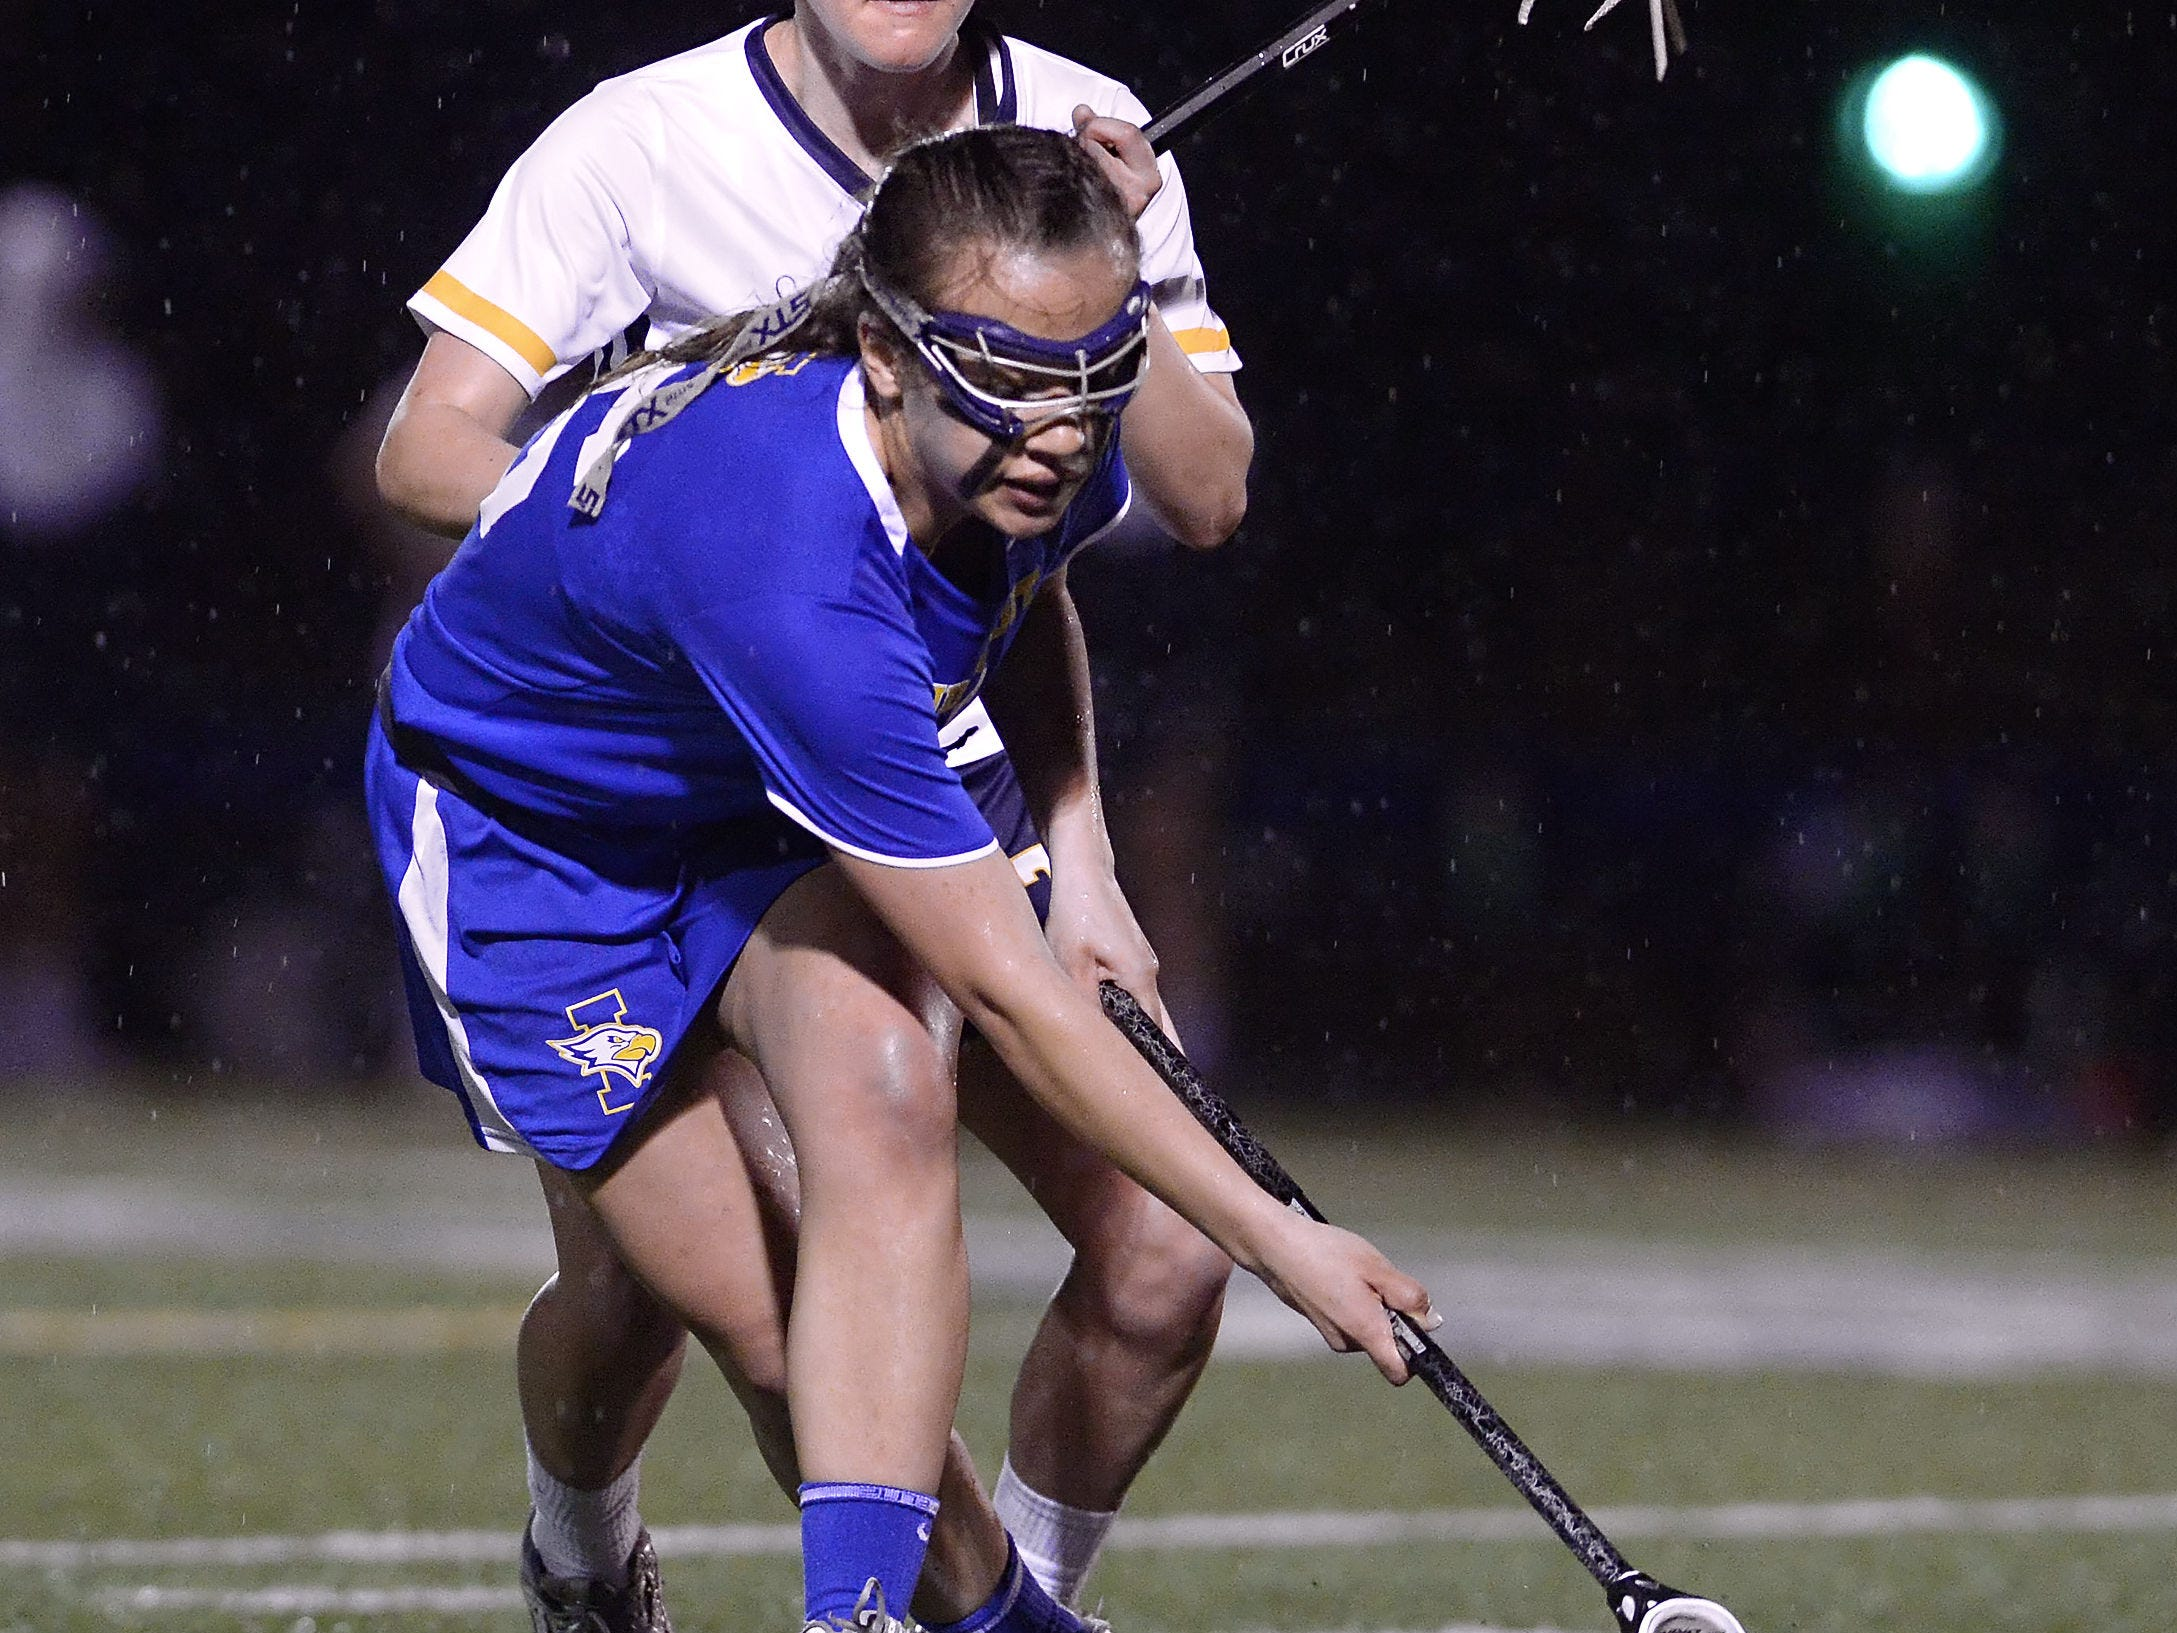 Irondequoit's Celoina Alvarado, front, scoops up the ball in front of Webster Thomas' Gabriella Vasile.